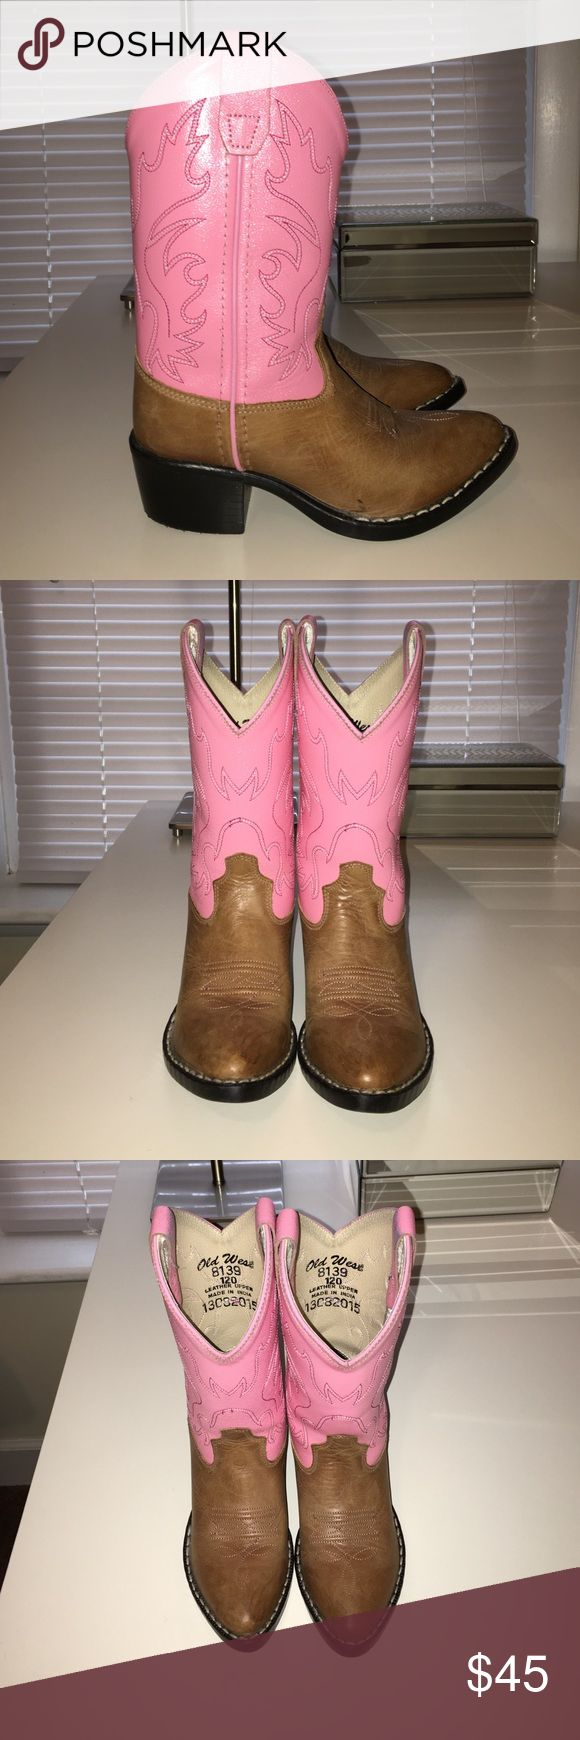 Kids cowboy boots worn twice genuine leather Cowboy boots old west Shoes Boots